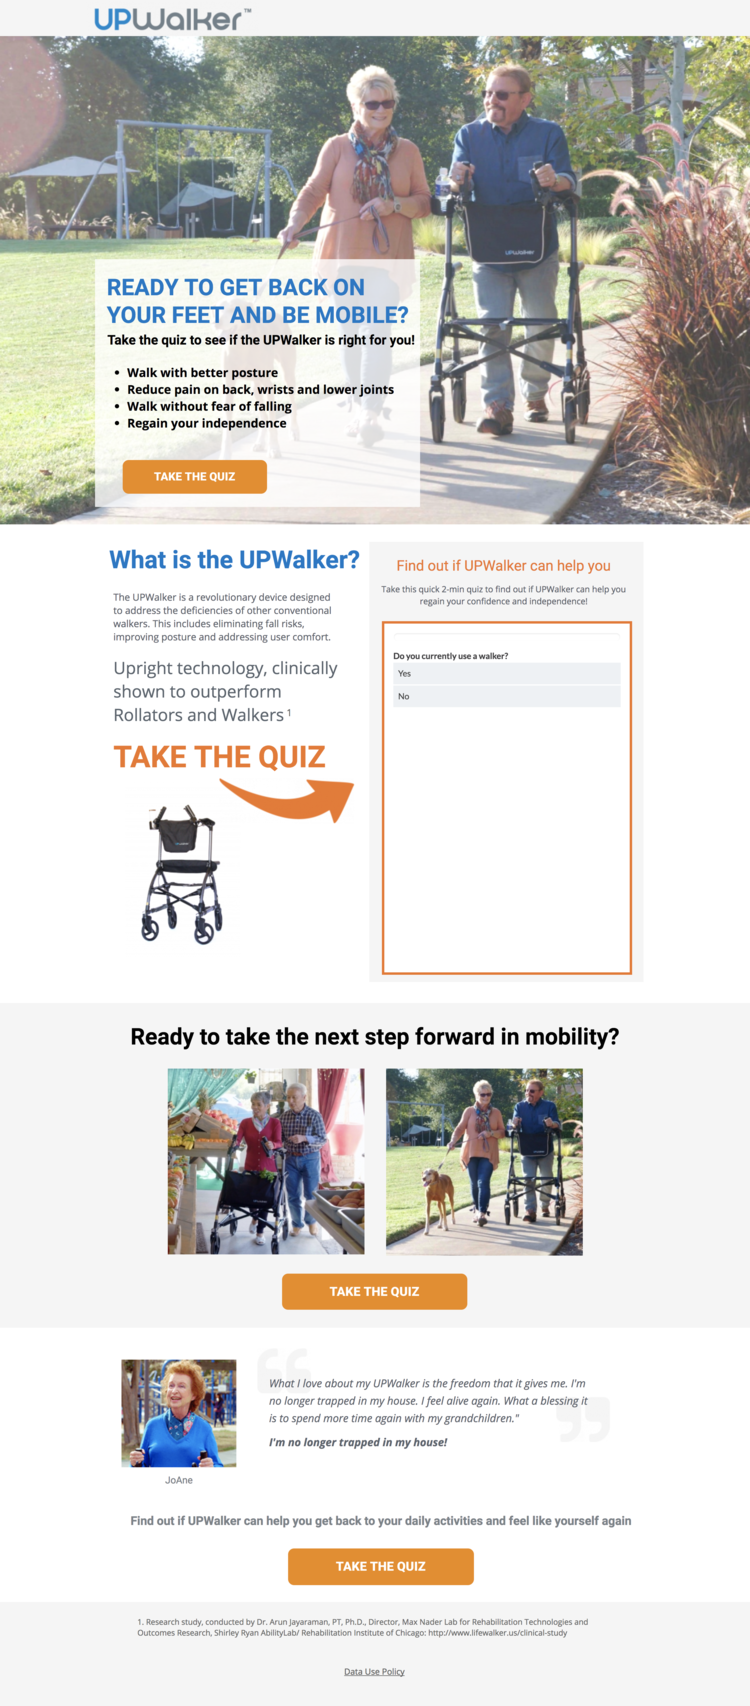 screencapture-upwalkermobility-1518655675724.png